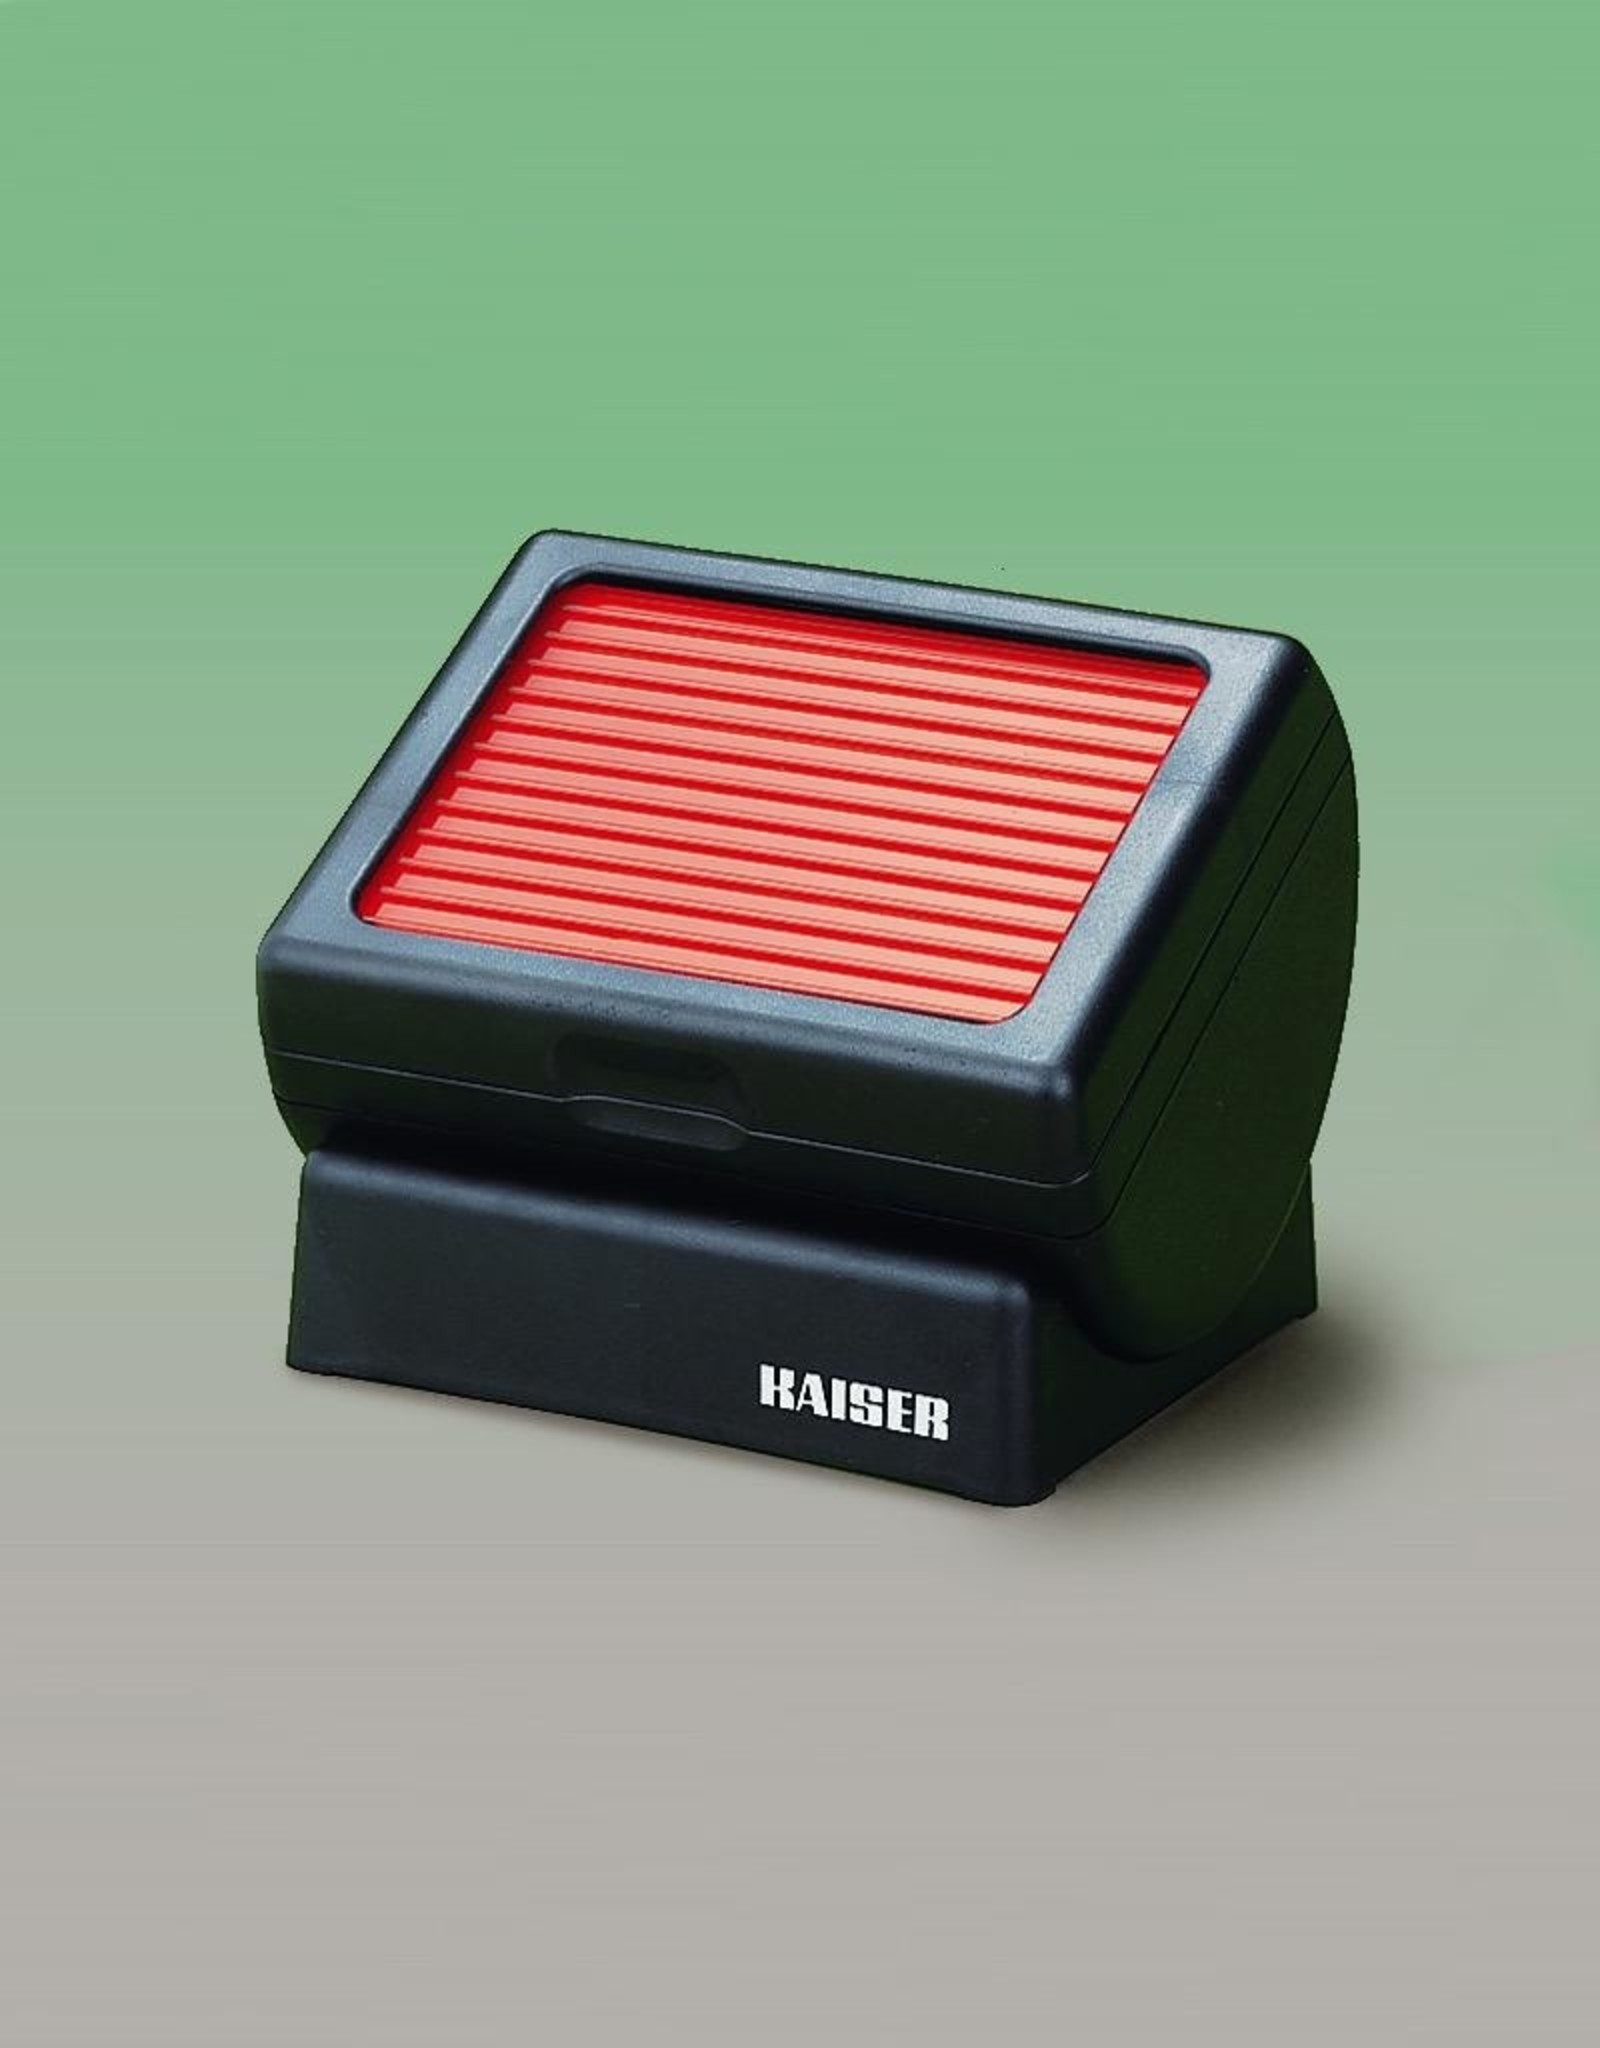 Kaiser Kaiser Darkroom Light, with switch and Universal filter for SW/Multigradefilter, 100 - 120 V / 60 Hz, US-Plug , with LED Lamp 2016, replacement lamp: # 2016, 2008